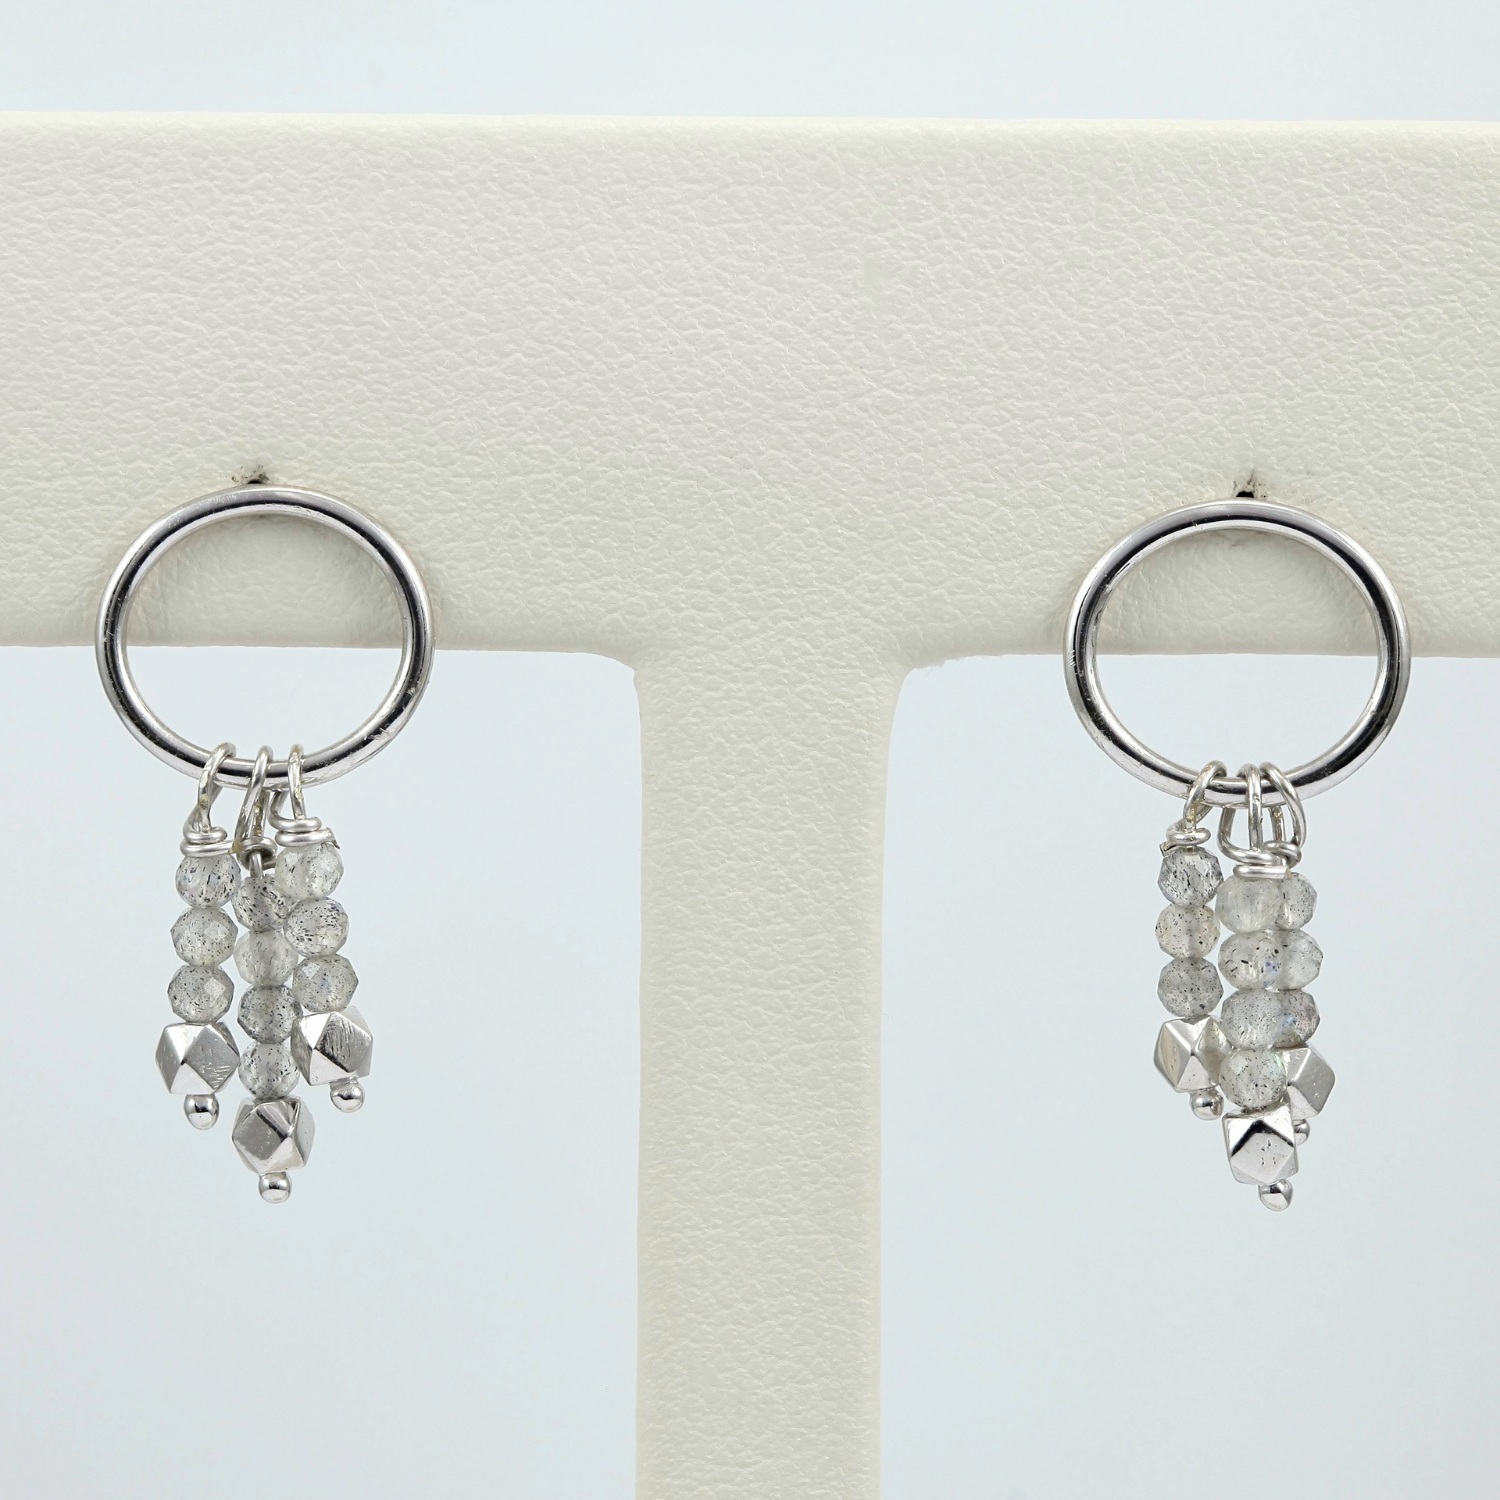 Exclusively by Nina 14K White Gold Triple Labradorite Bead Earrings